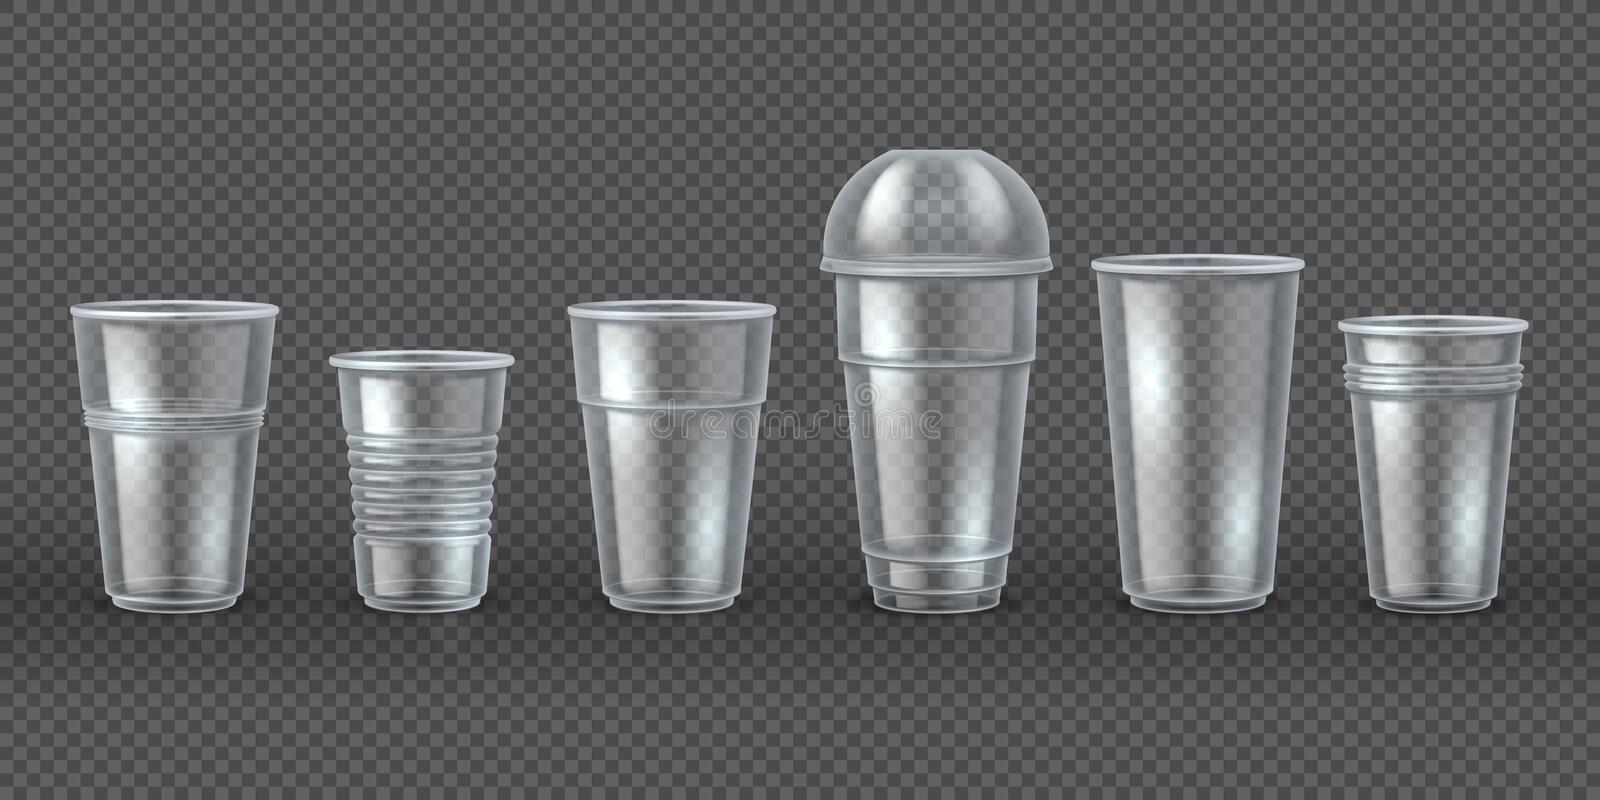 Plastic cups. Disposal coffee drink mugs isolated mockup, realistic 3D packaging for food and beverages. Vector royalty free illustration